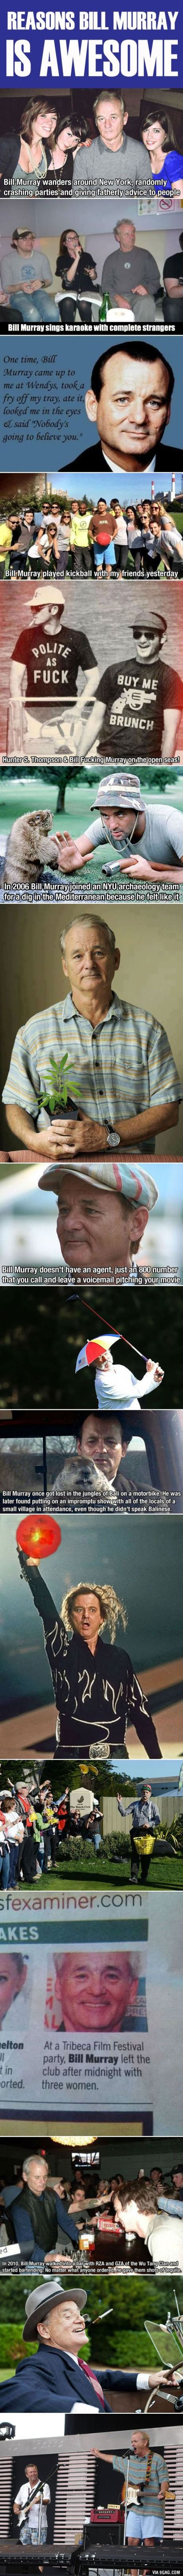 More reasons to love Bill Murray